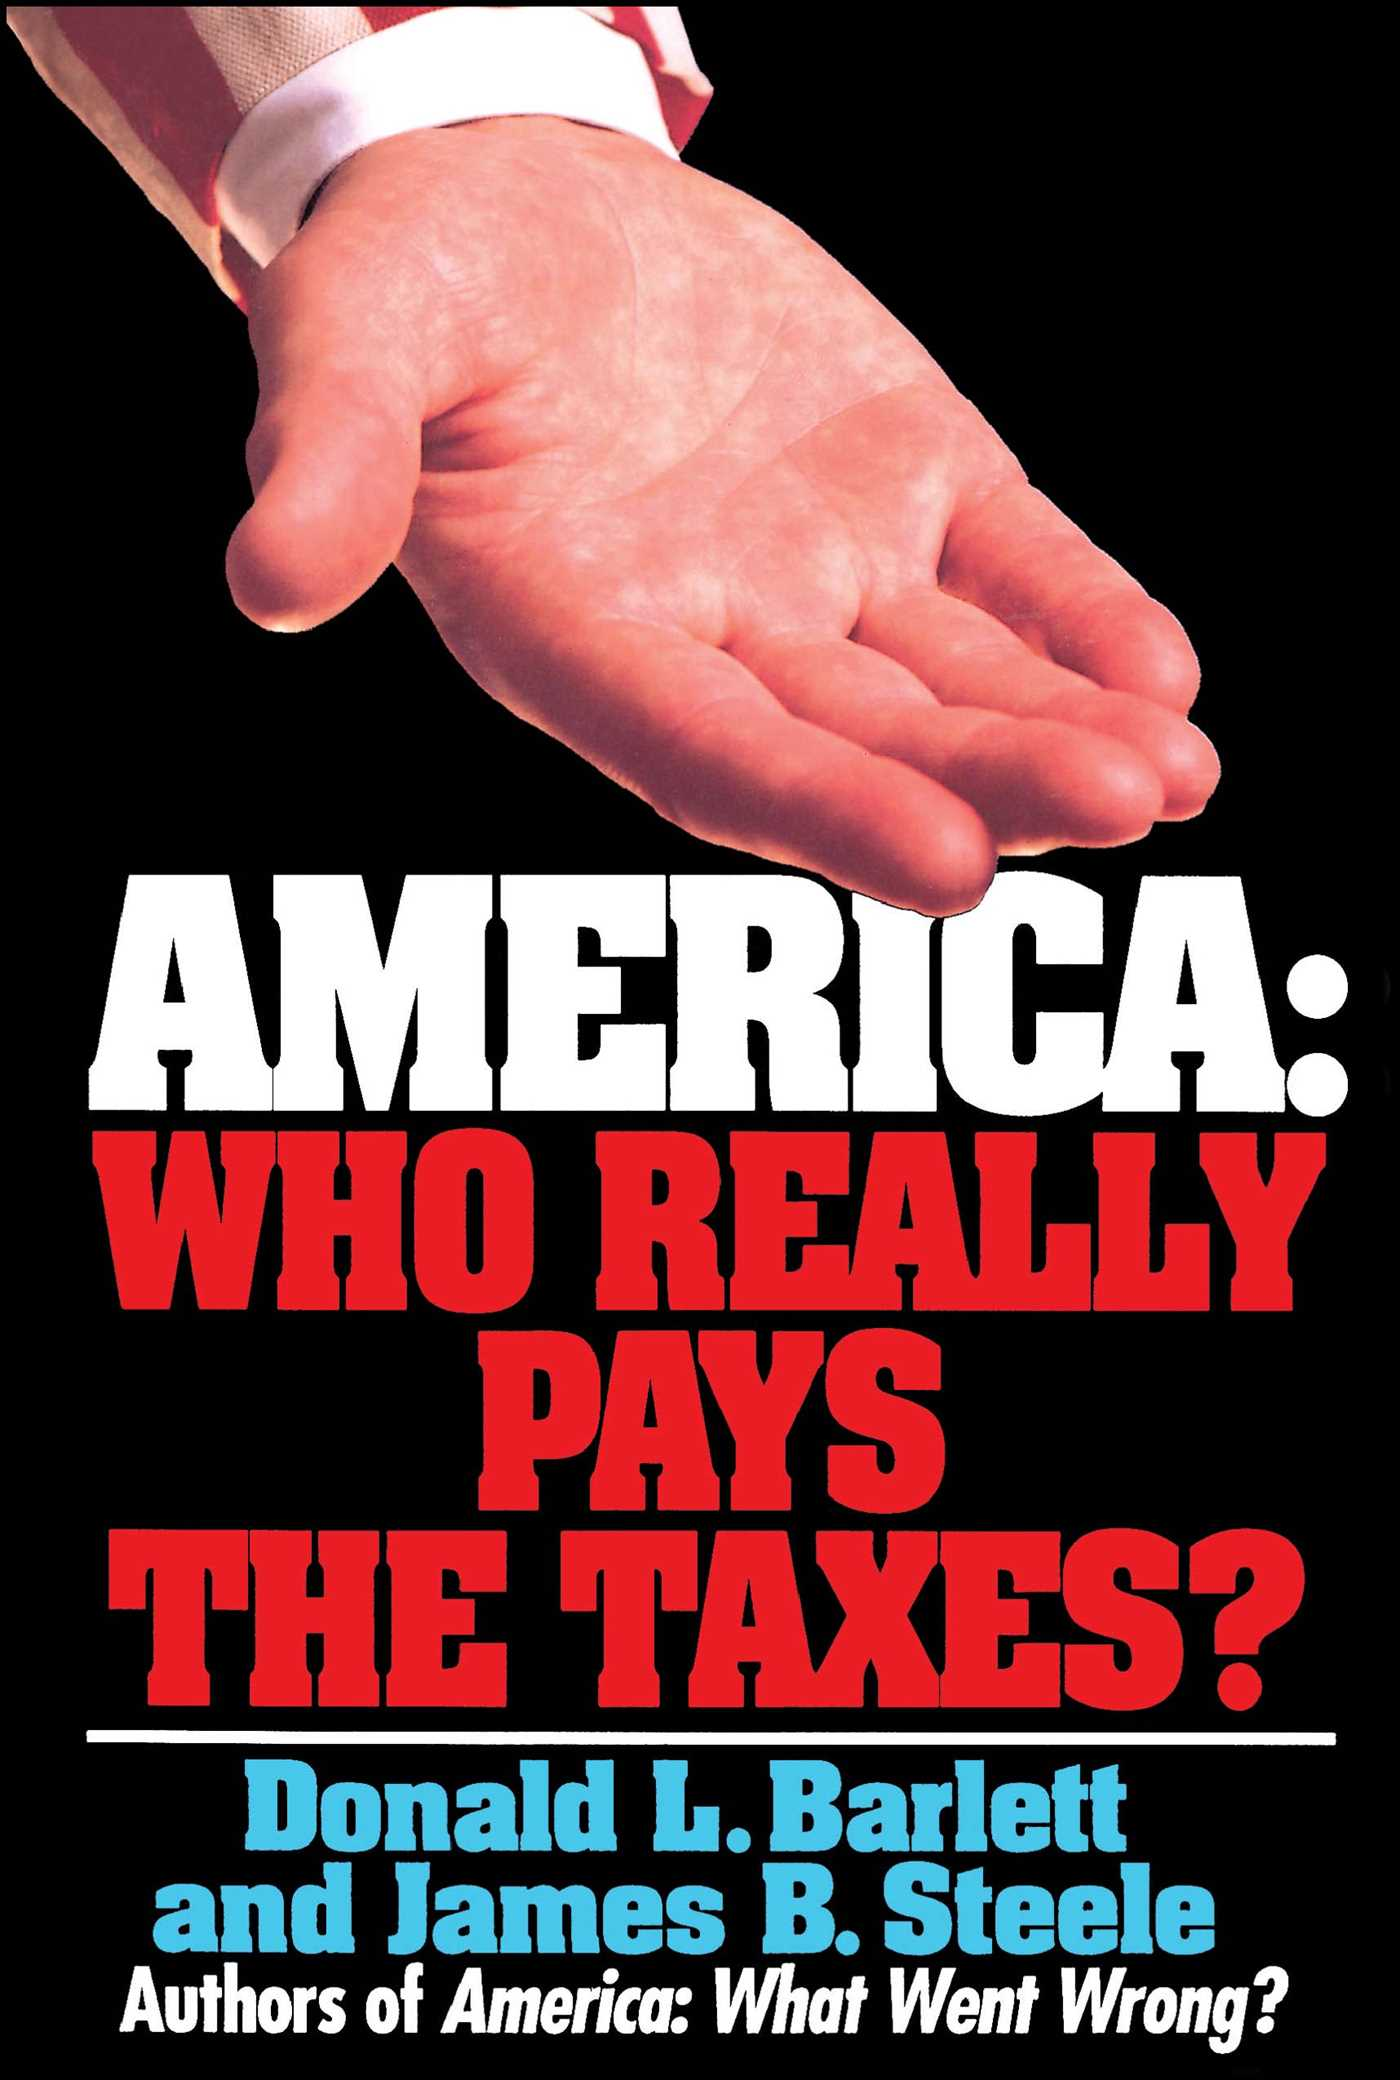 America who really pays the taxes 9780671871574 hr